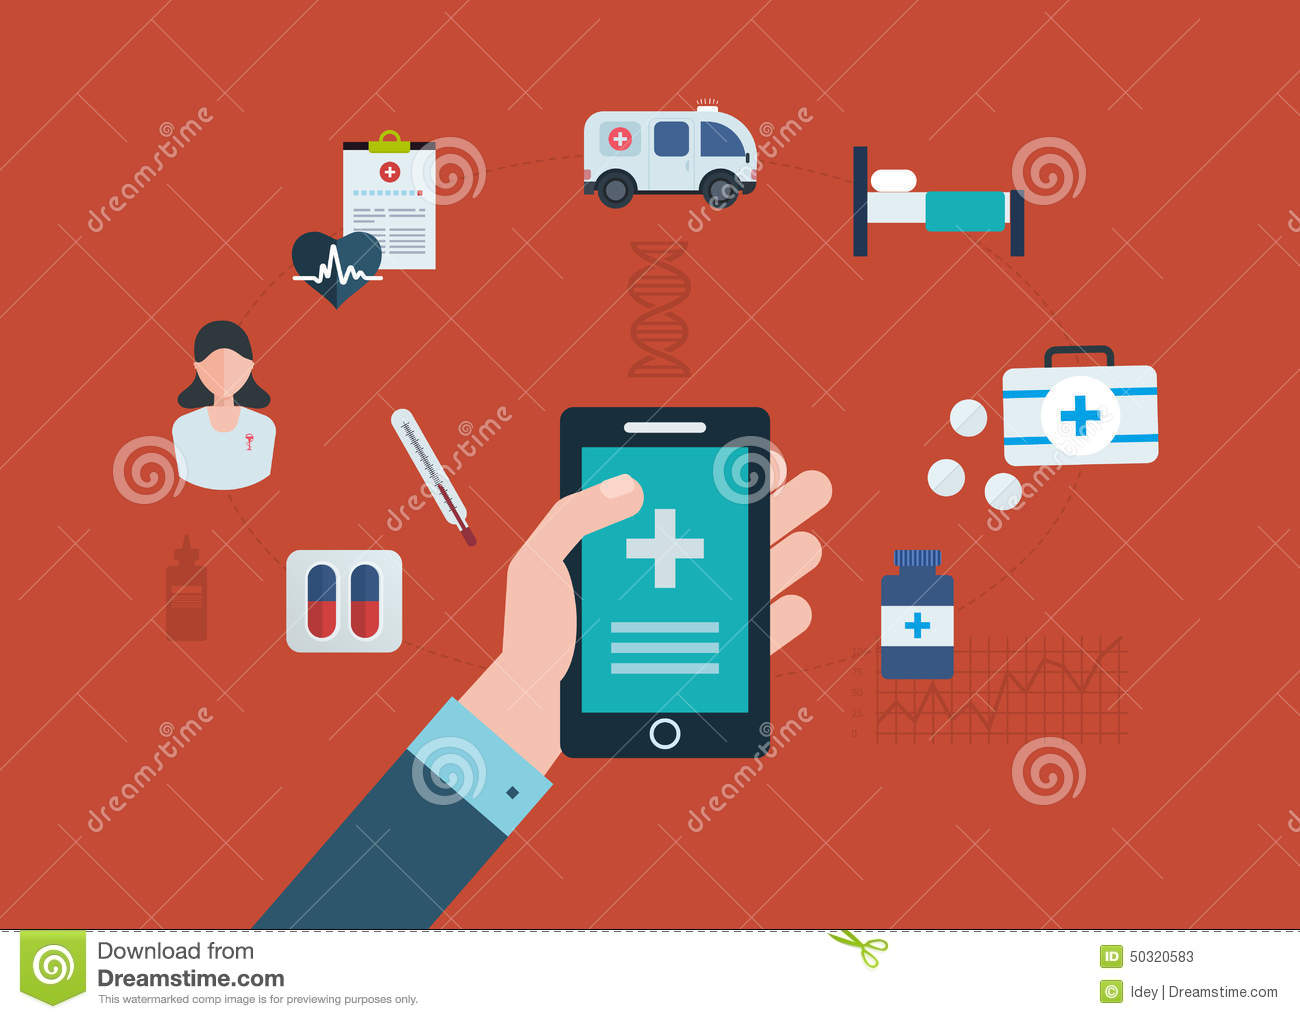 concept-medical-care-flat-design-modern-vector-illustration-online-diagnosis-first-aid-50320583.jpg